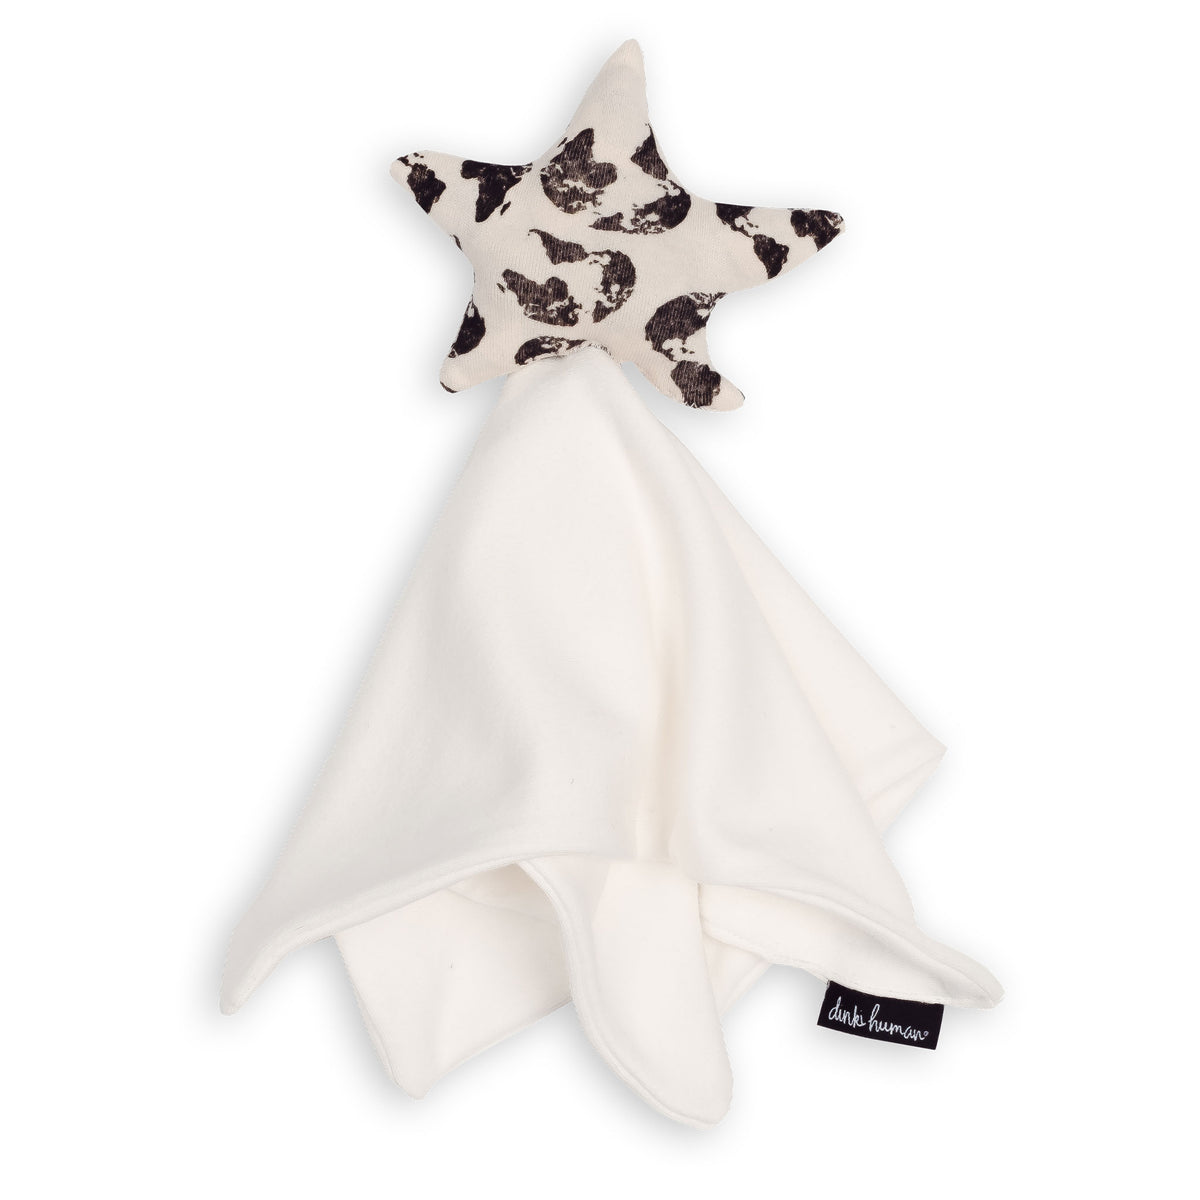 Star Snuggle Baby Comfort Toy - Dinki Human Organic Kids Clothing